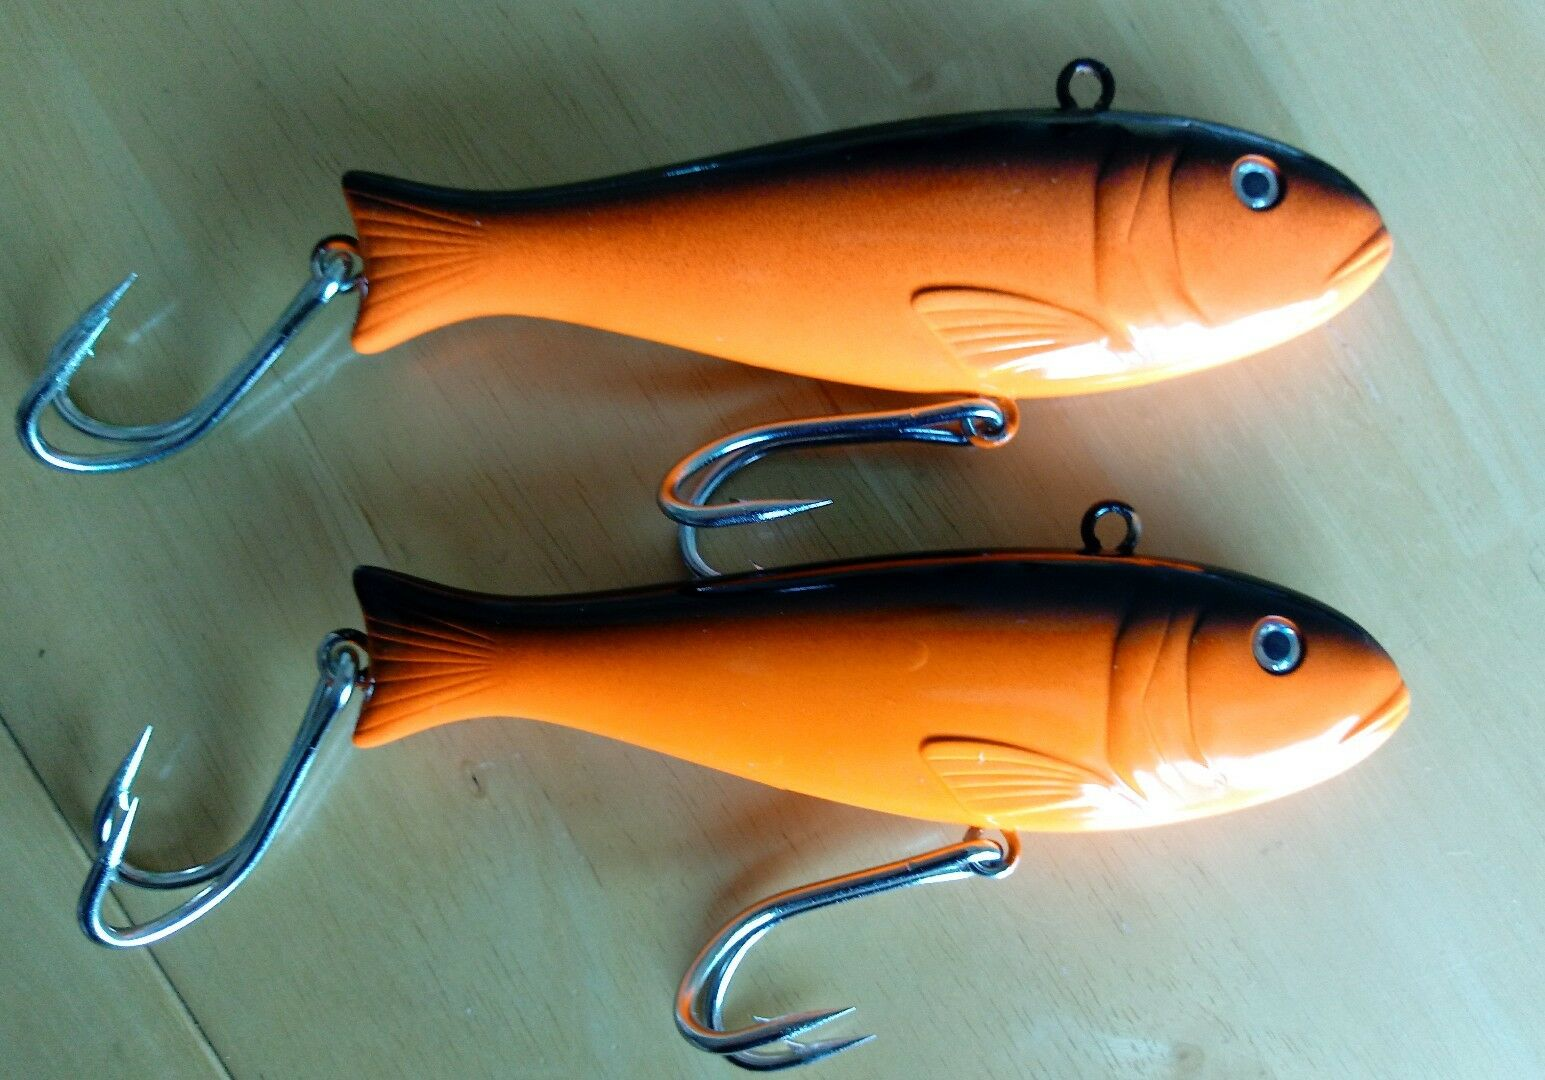 Offshore angler trolling lure mullet saltwater fishing   6.5   6oz. lot of 2 new  at cheap